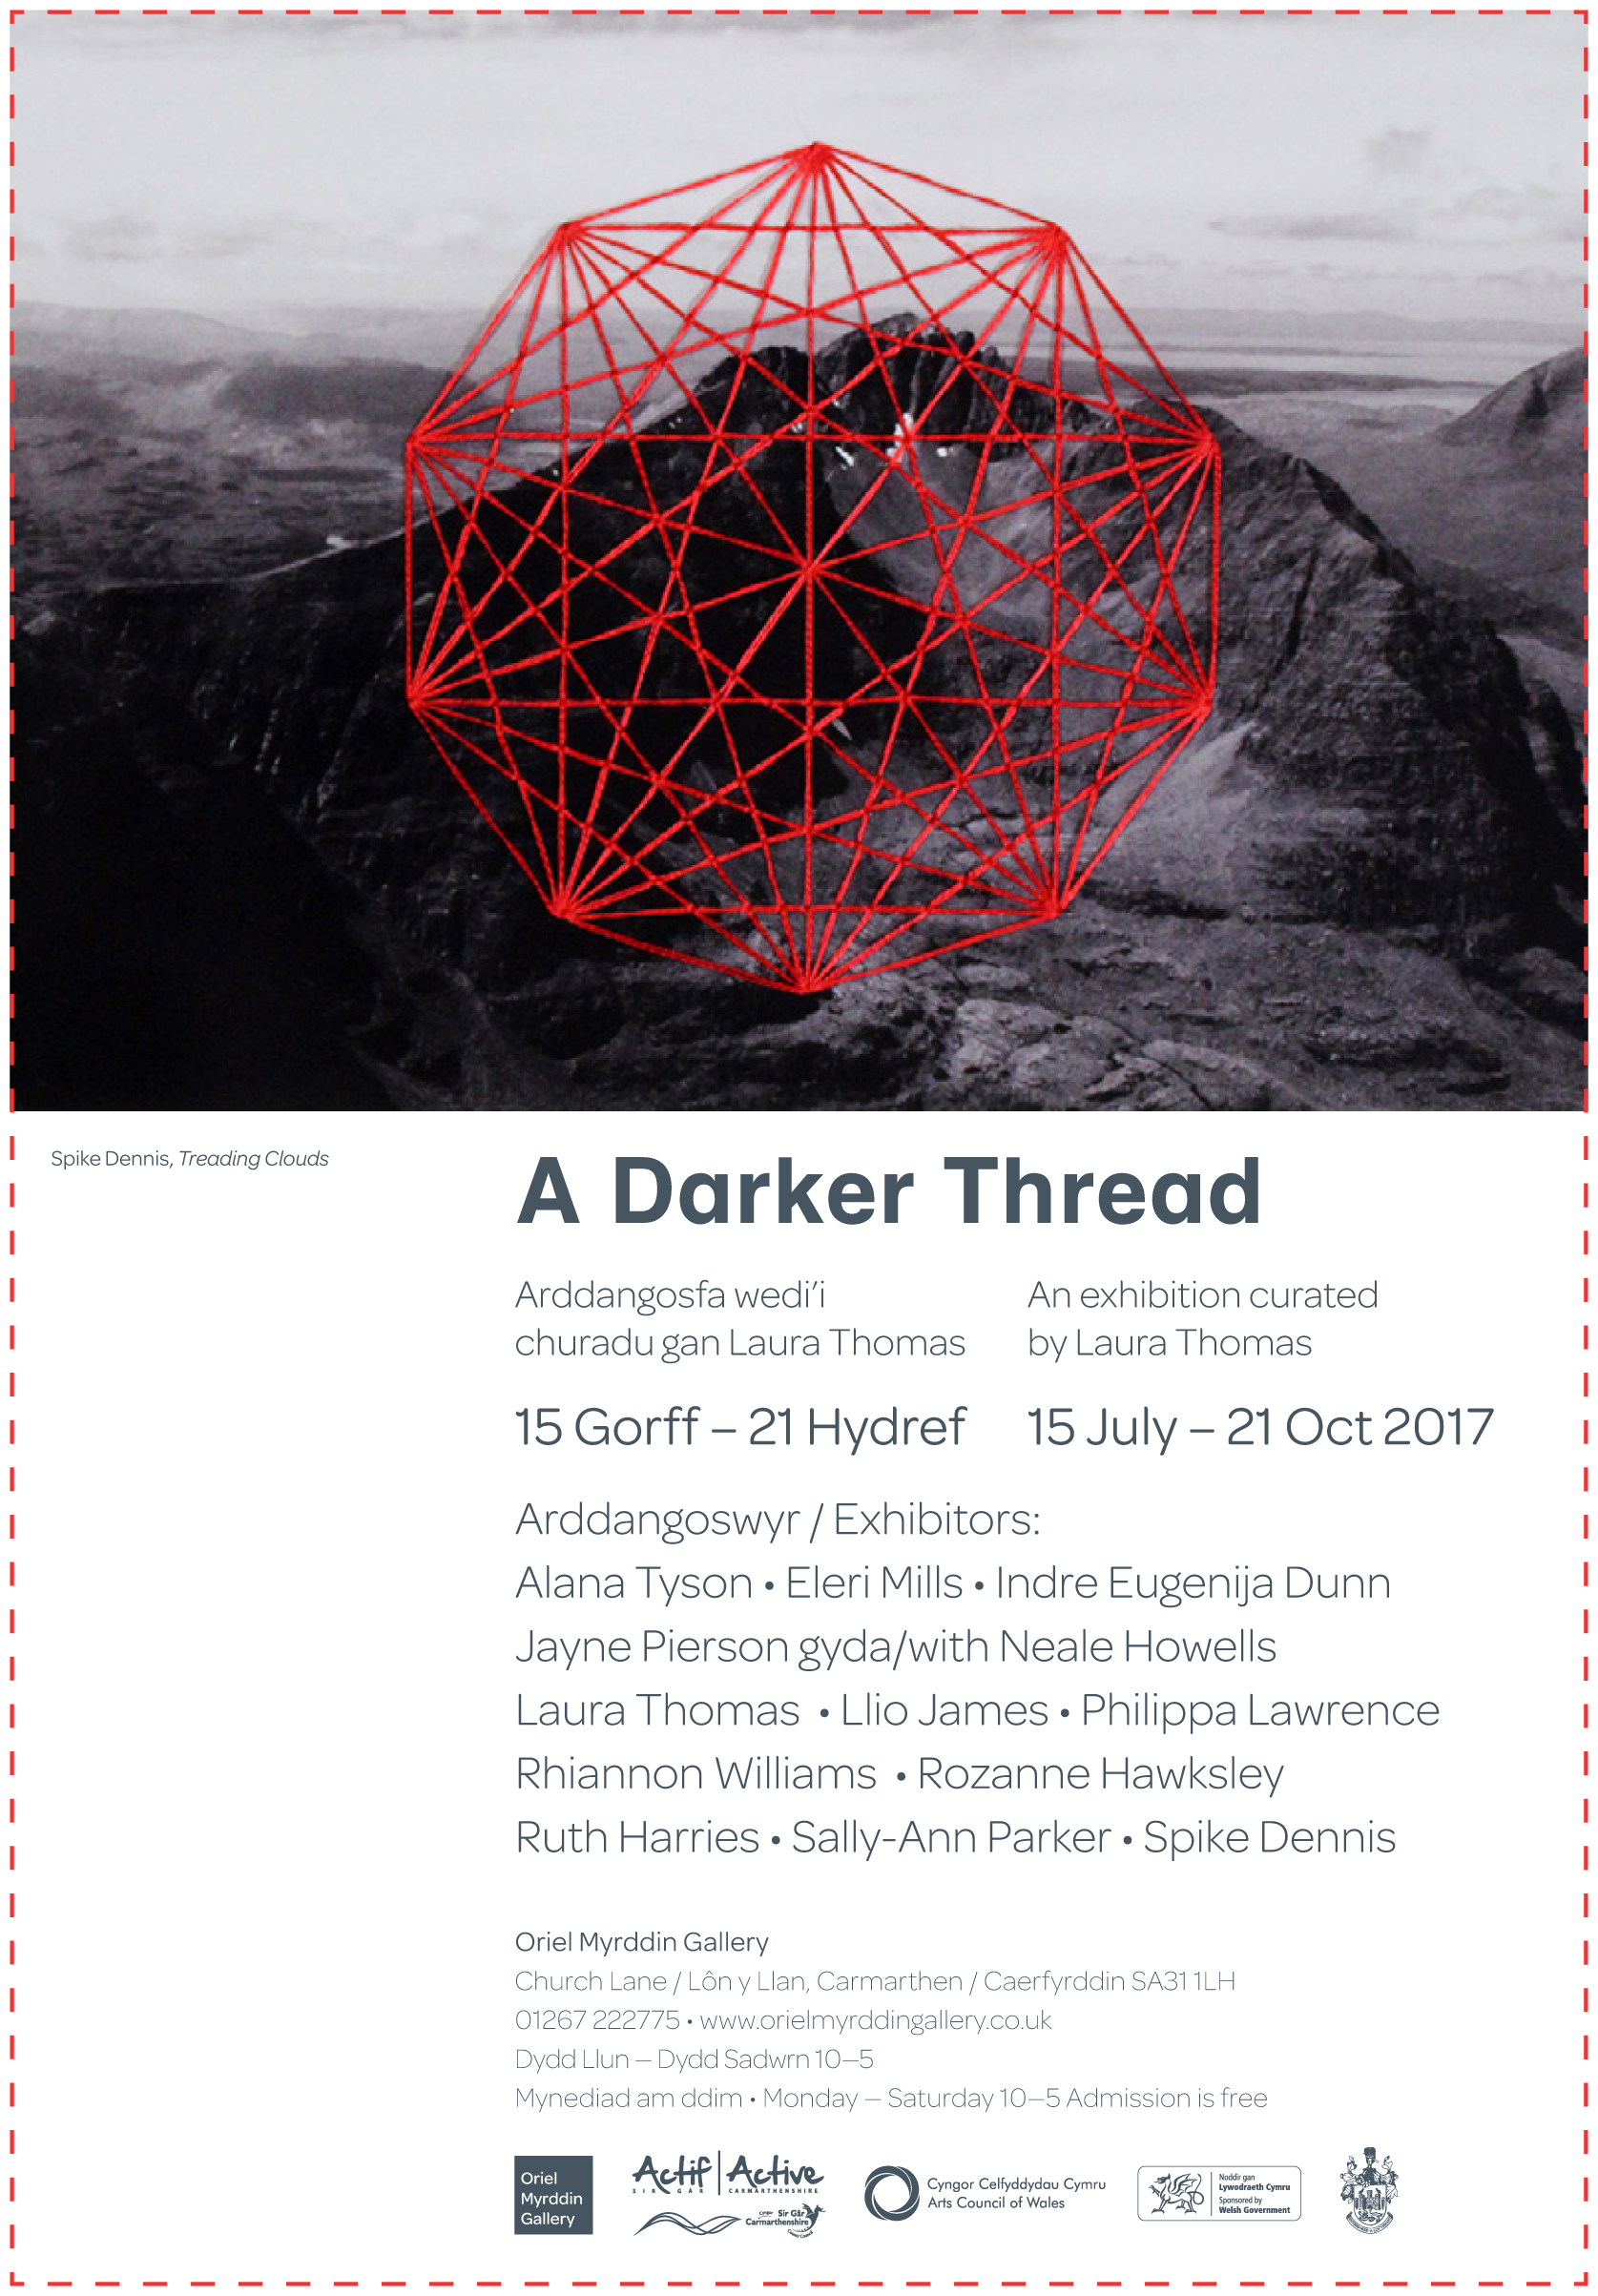 A Darker Thread exhibition at Oriel Myrddin Gallery Carmarthen